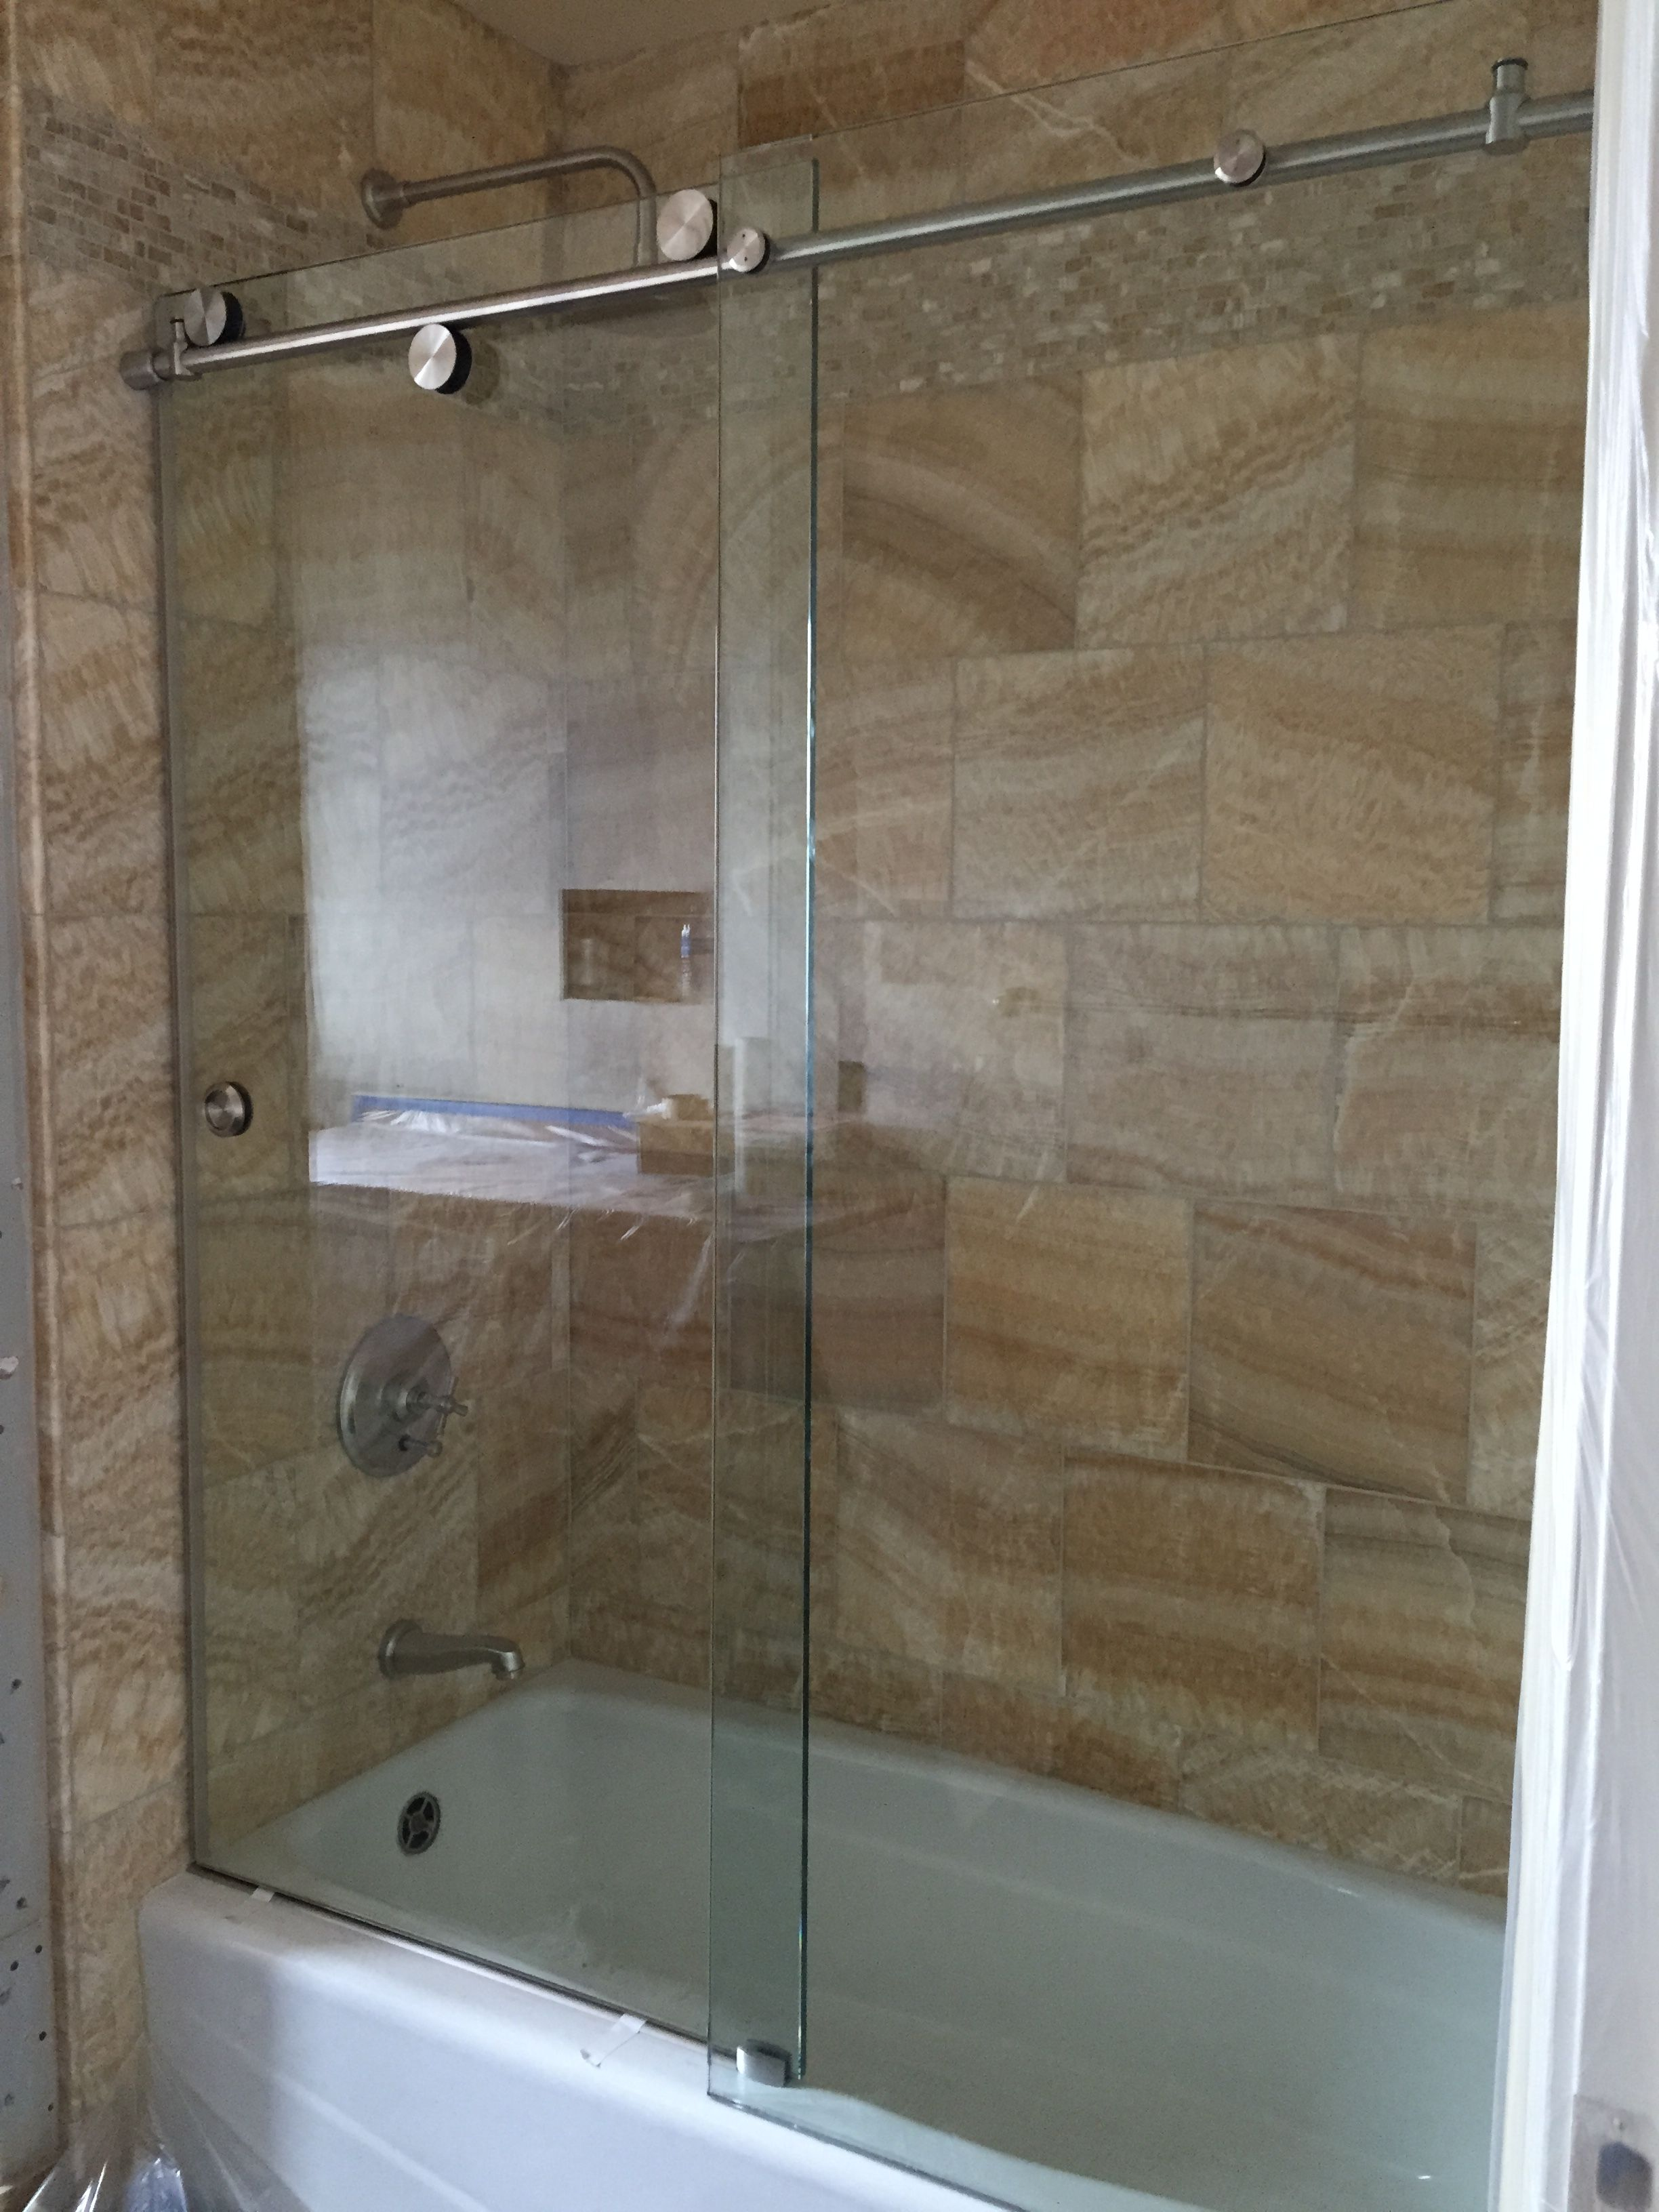 Custom Heavy Glass Shower Enclosure Clear 1 2 And 3 8 Glass Glass To Glass 90 Degree Hinges Square Hand Glass Shower Enclosures Glass Shower Shower Doors